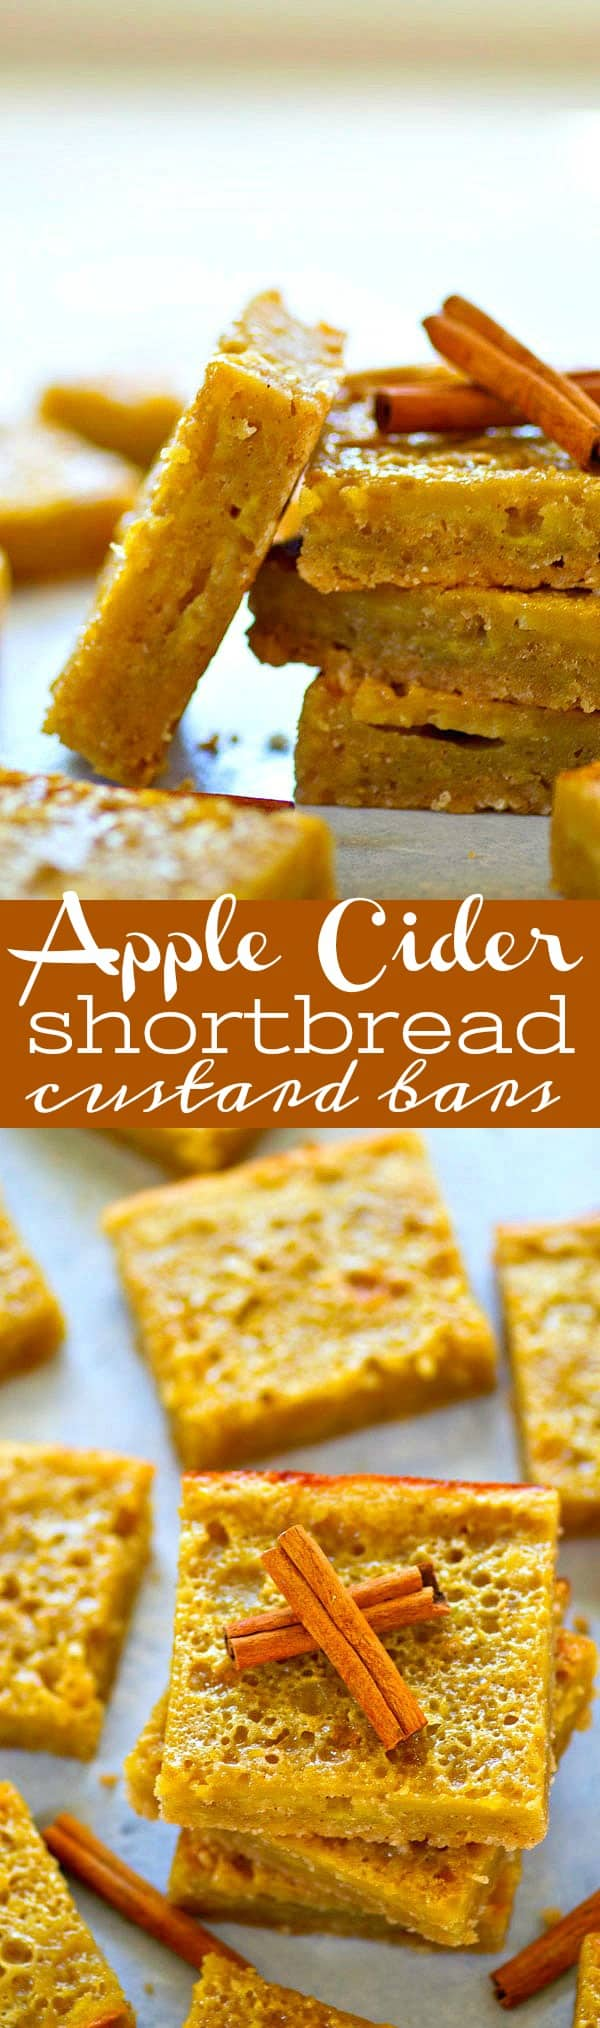 These apple cider shortbread custard bars sing fall flavors in every bite! Buttery shortbread crust and sweet apple cider custard filling is the most irresistible combo.